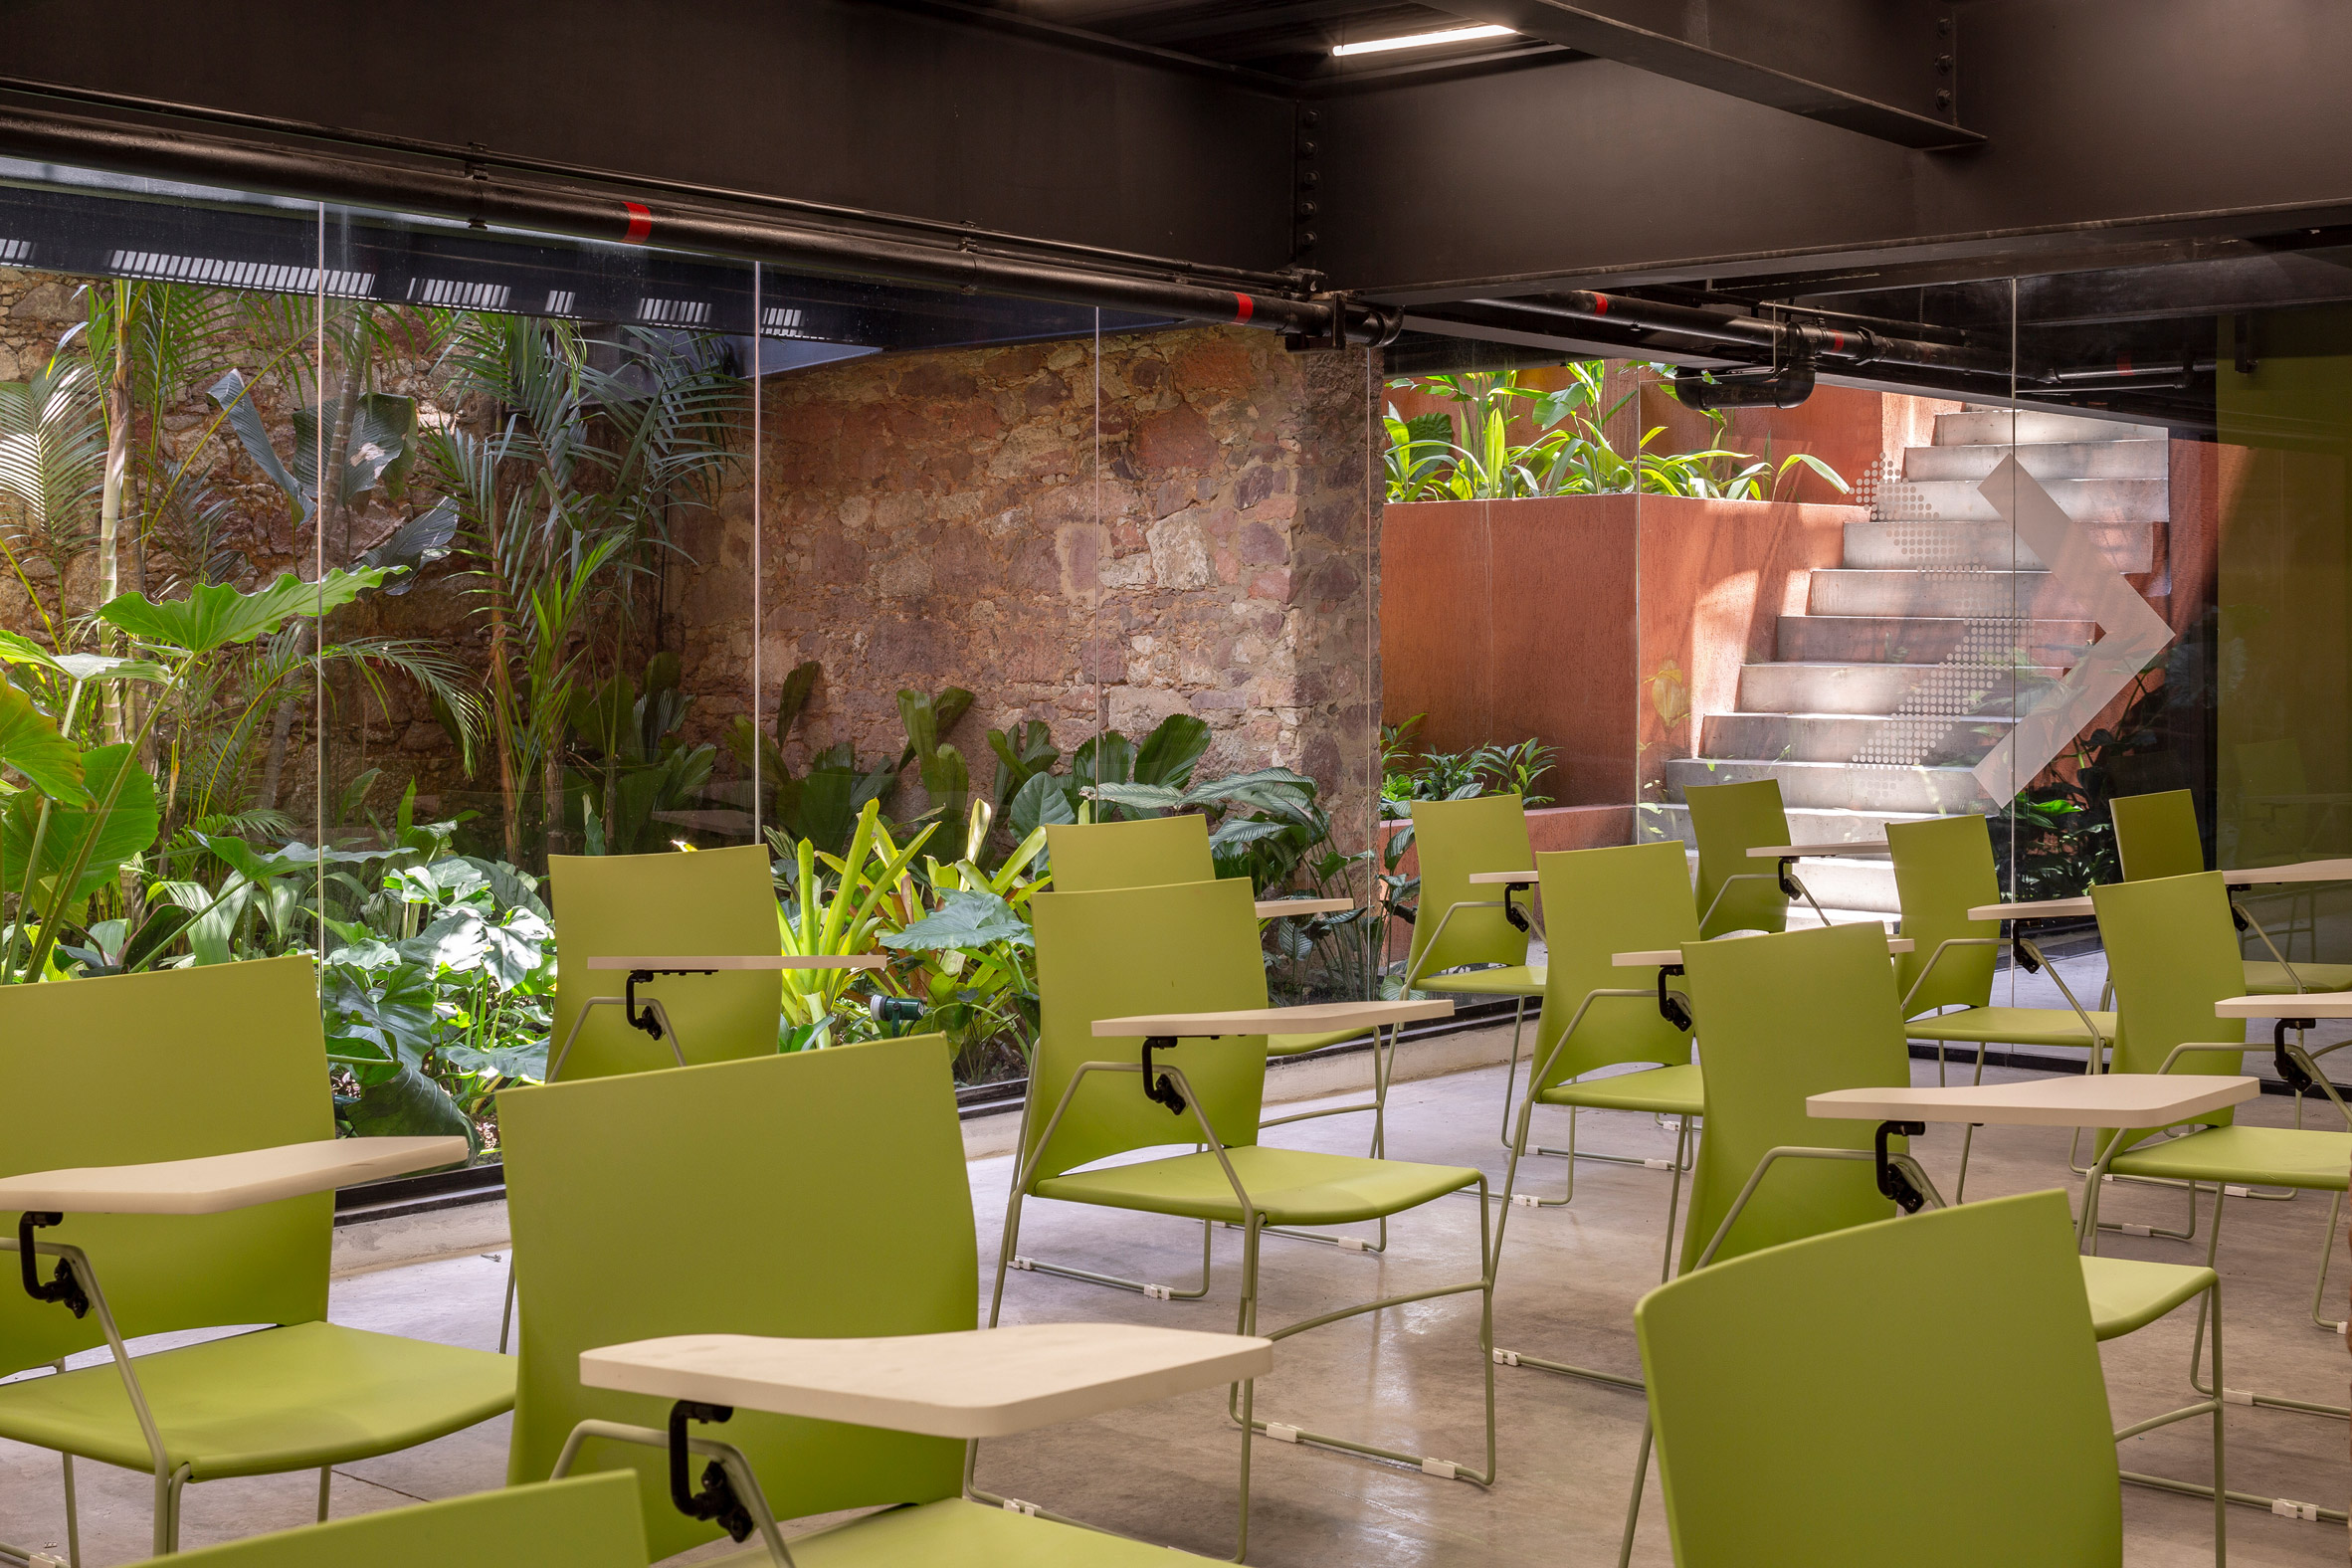 Interiors of co-working space in brazil by Laurent Troost Architectures